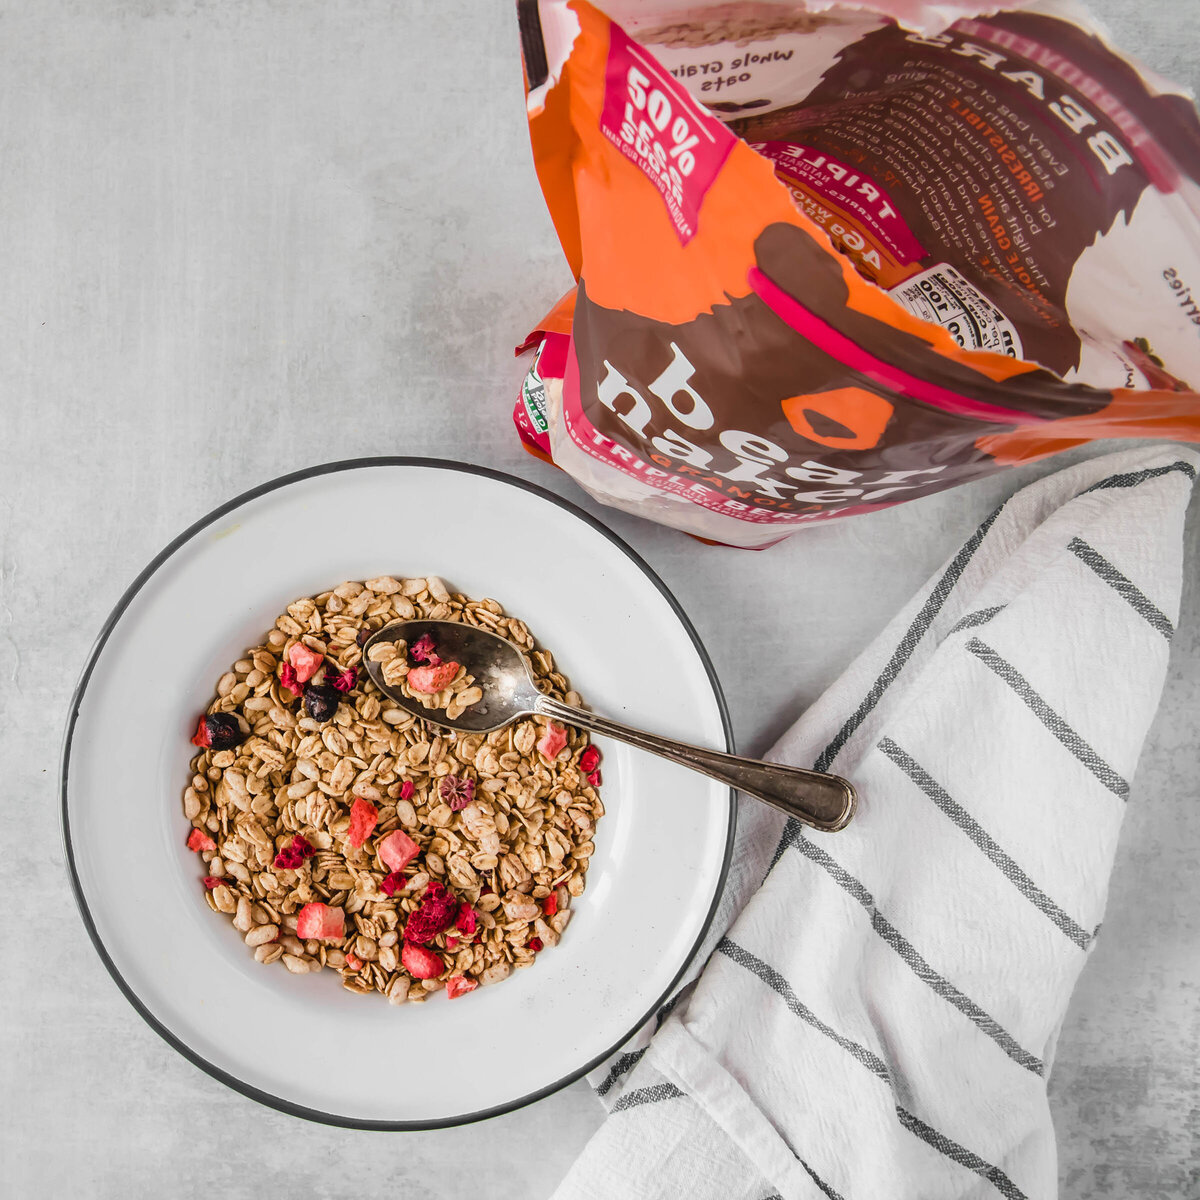 breakfast cereal photograph for Kelloggs and Bear Naked Granola by Nancy Ingersoll